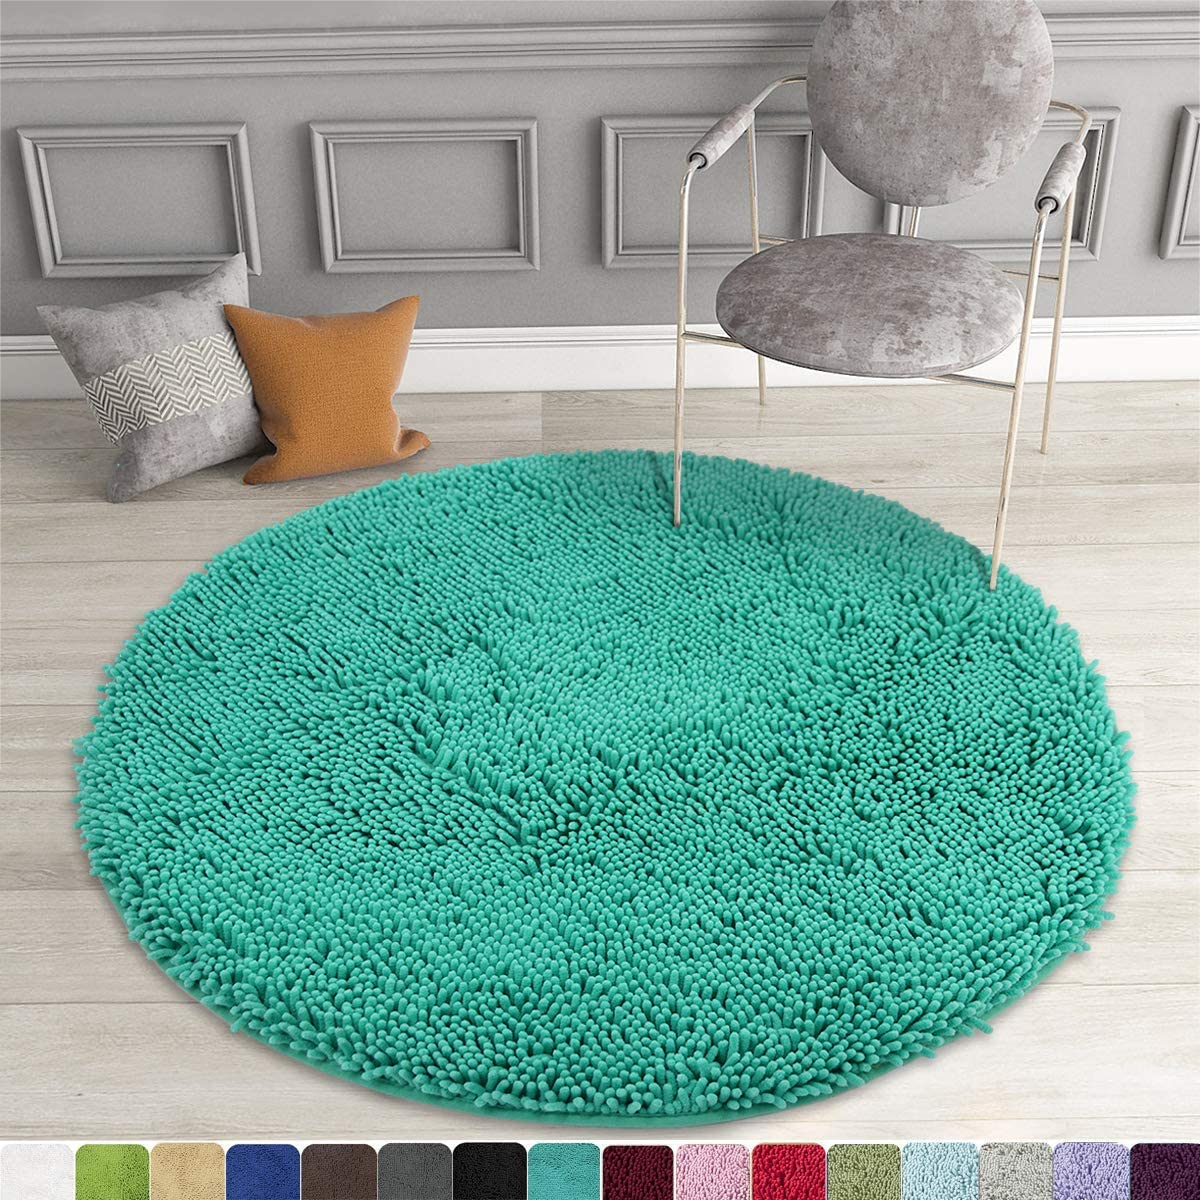 MAYSHINE Round Bath Mat Non-Slip Chenille 3 Feet Shaggy Bathroom Rugs Extra Soft and Absorbent Perfect Plush Carpet for Living Room Bedroom, Machine Wash/Dry-Turquoise